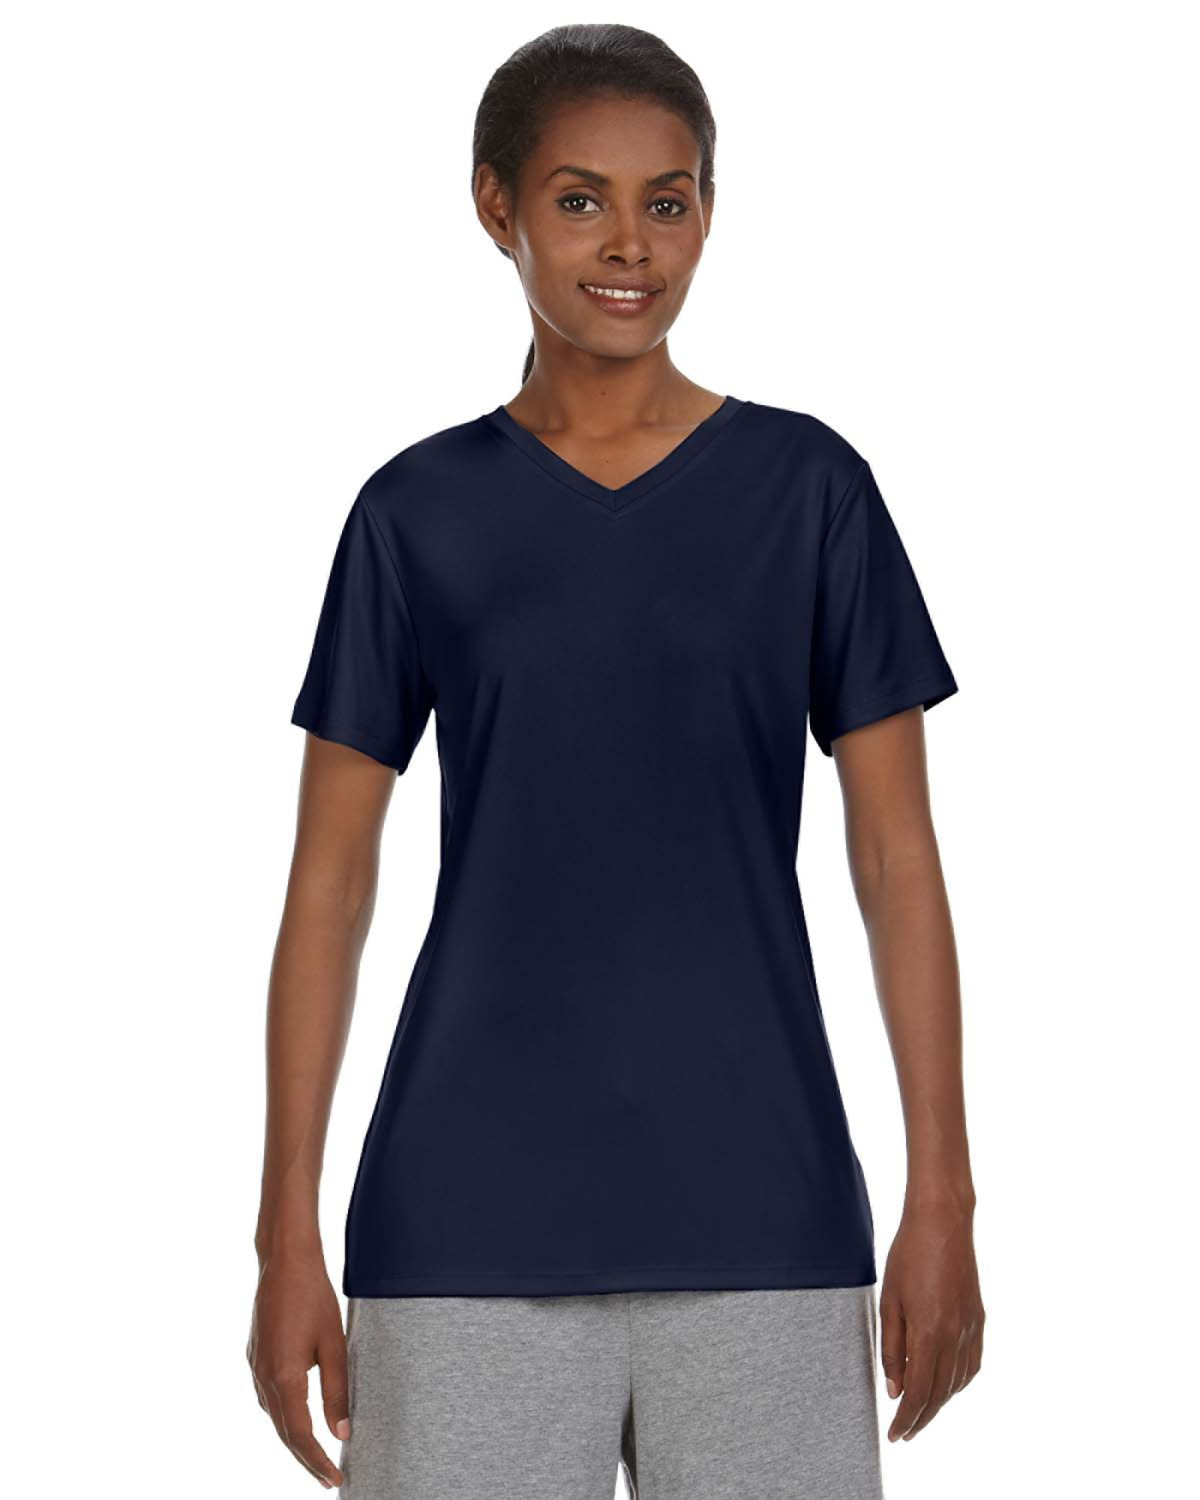 Hanes 483V - 4 oz. Cool Dri® V-Neck T-Shirt